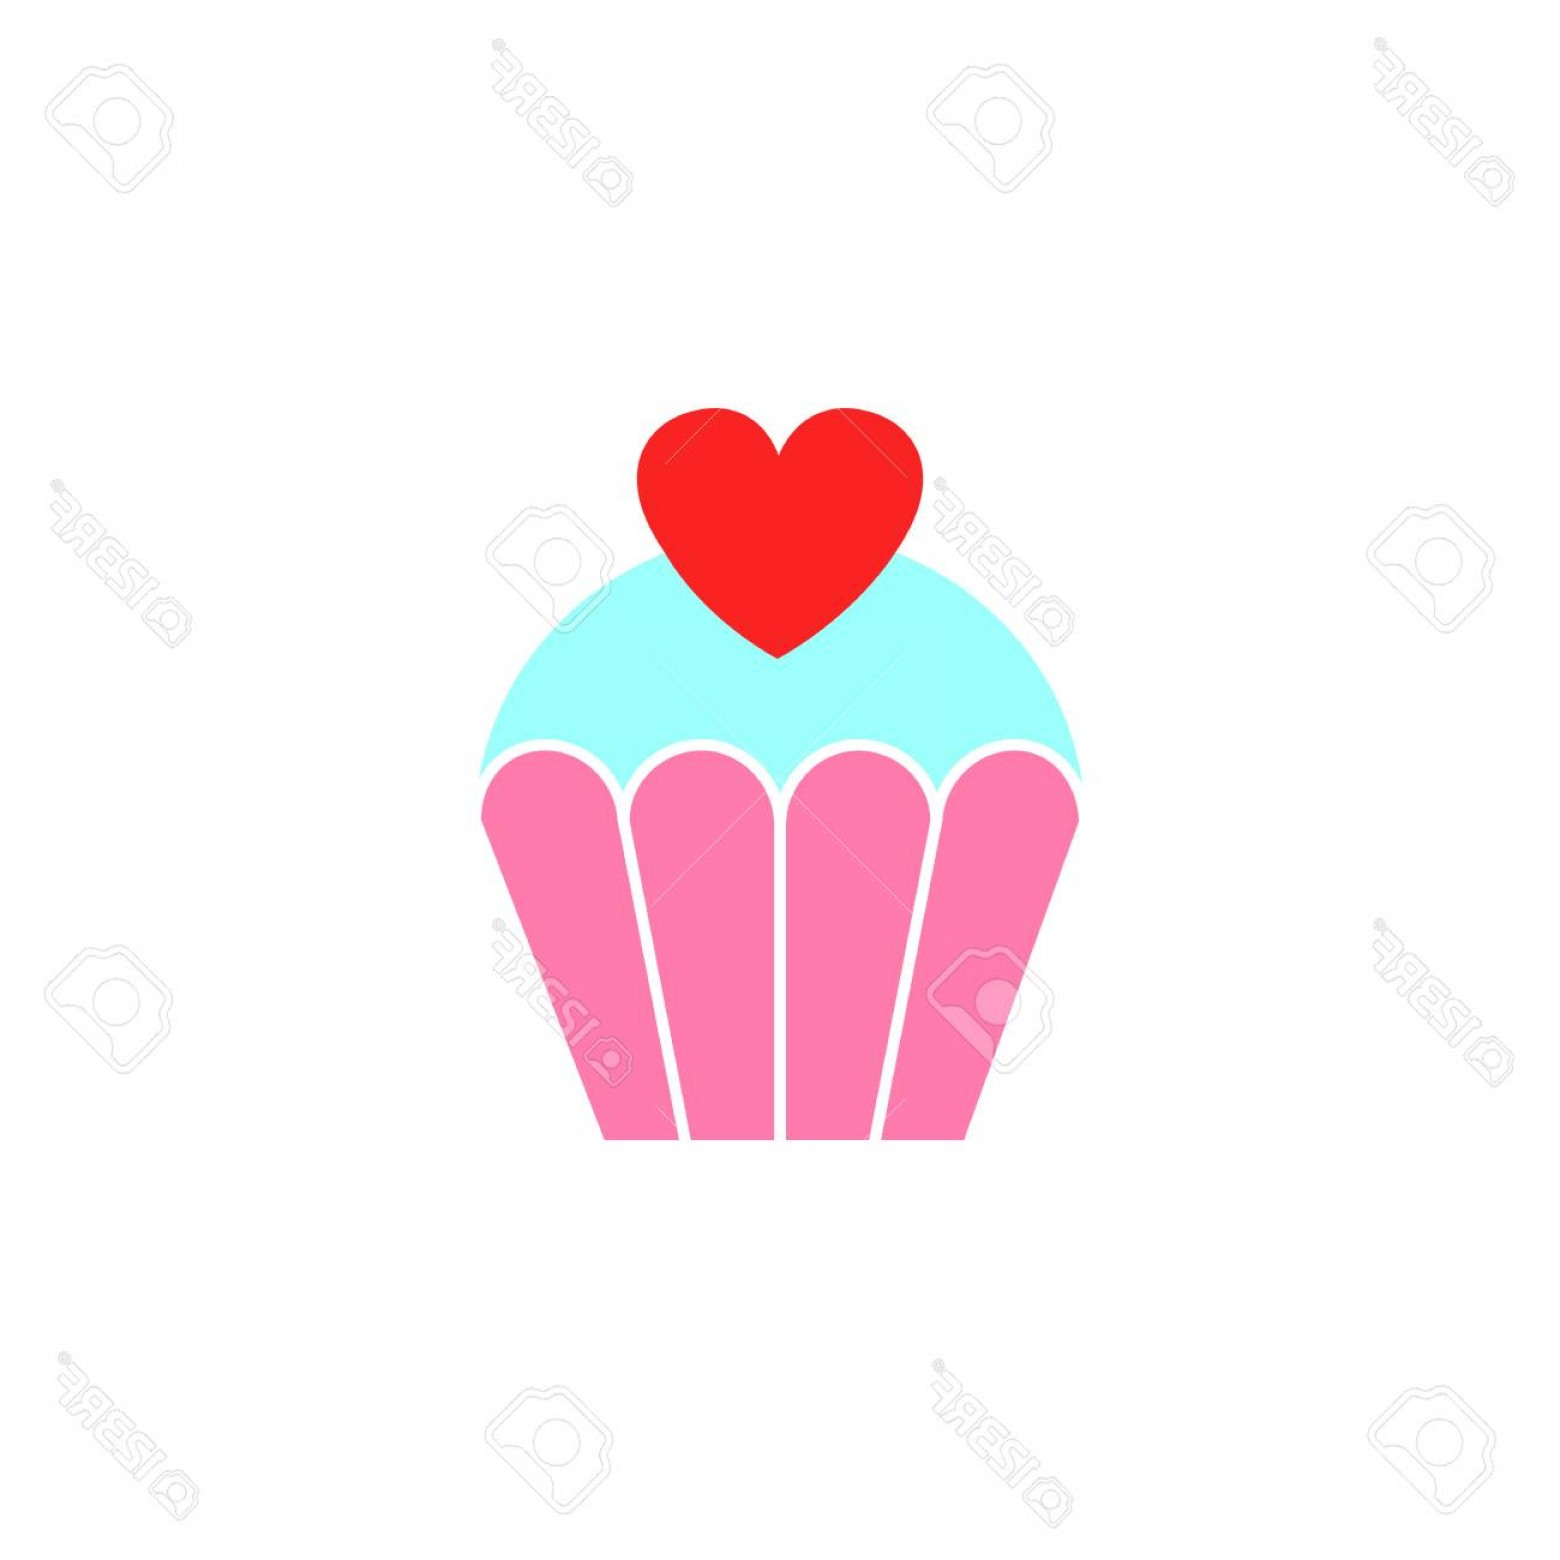 Solid Heart Vector Drawing: Photolove Cake With Heart Solid Icon Sweets For Valentine S Day Love Concept Vector Graphics A Colorful L